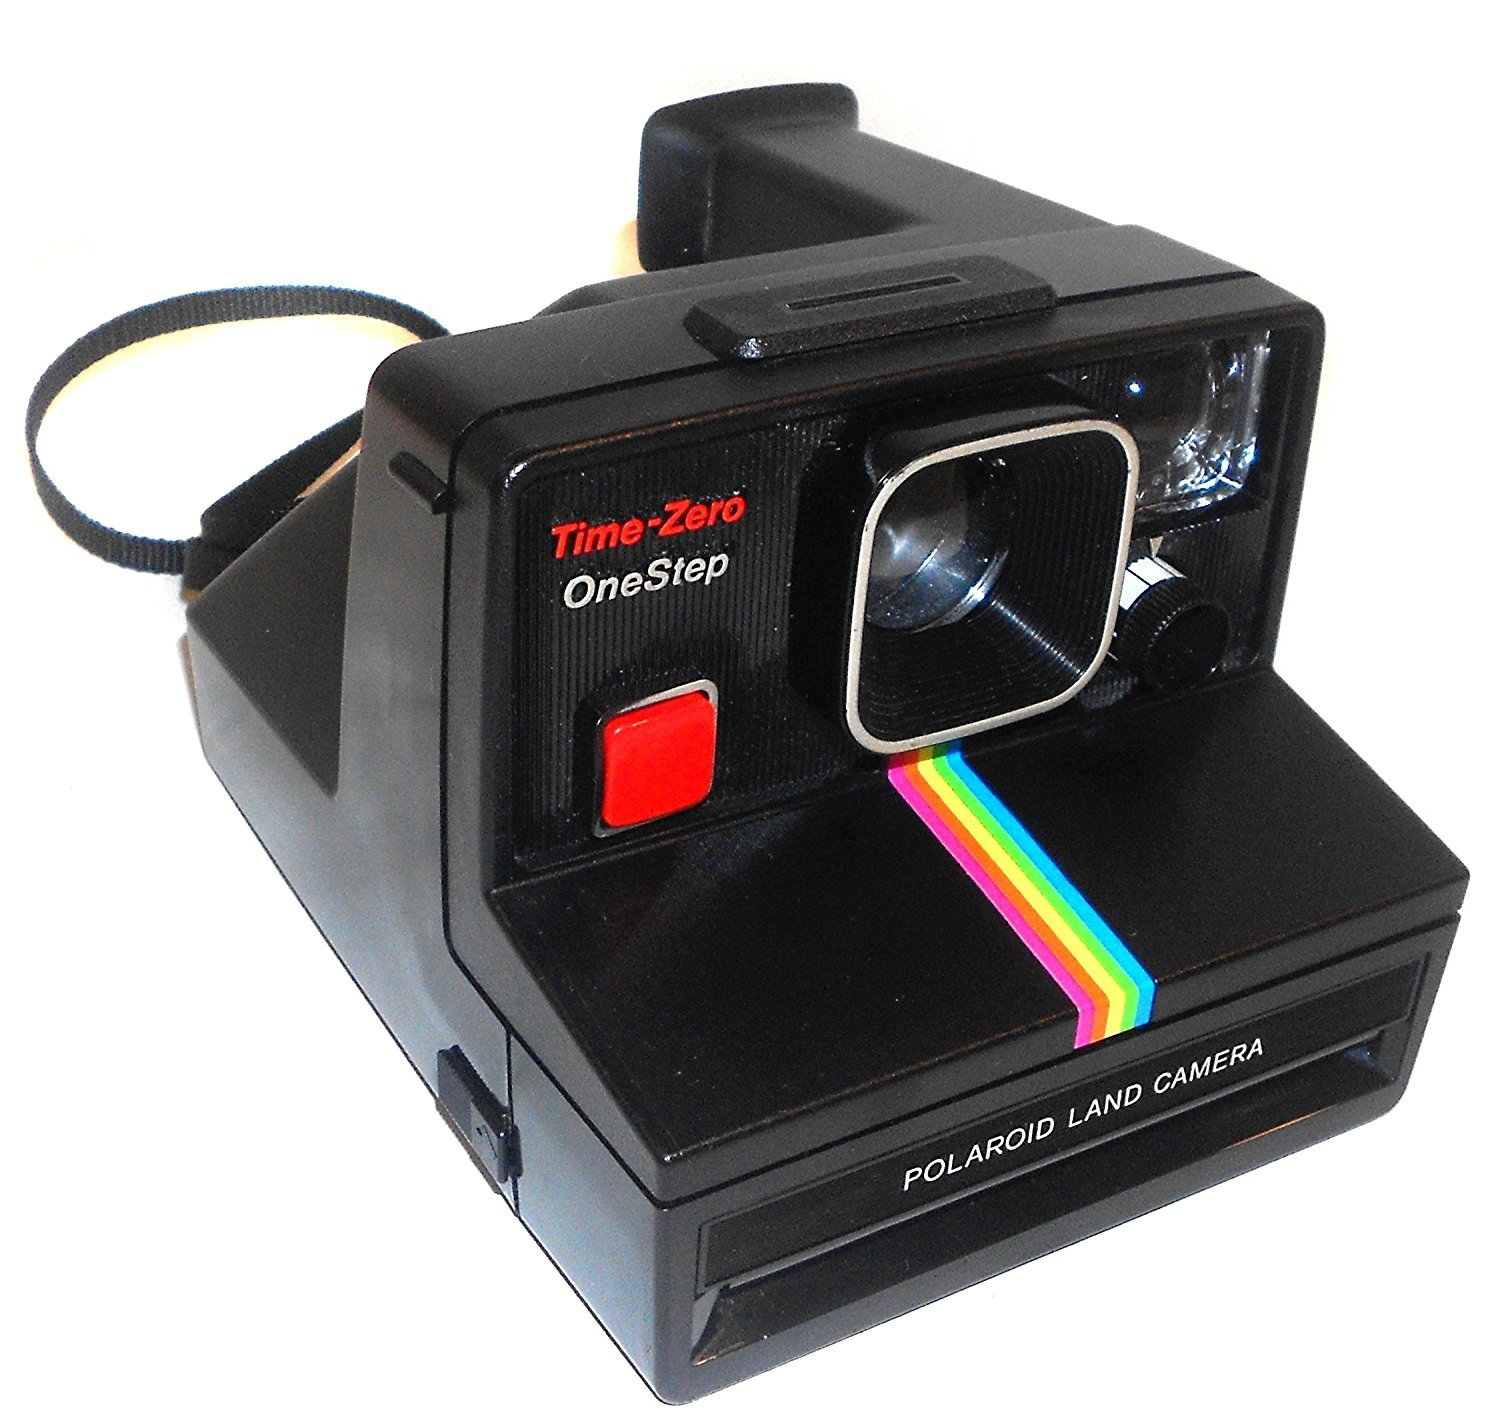 Amazon.com : Vintage Polaroid Time-Zero OneStep SX-70 Land Camera ...